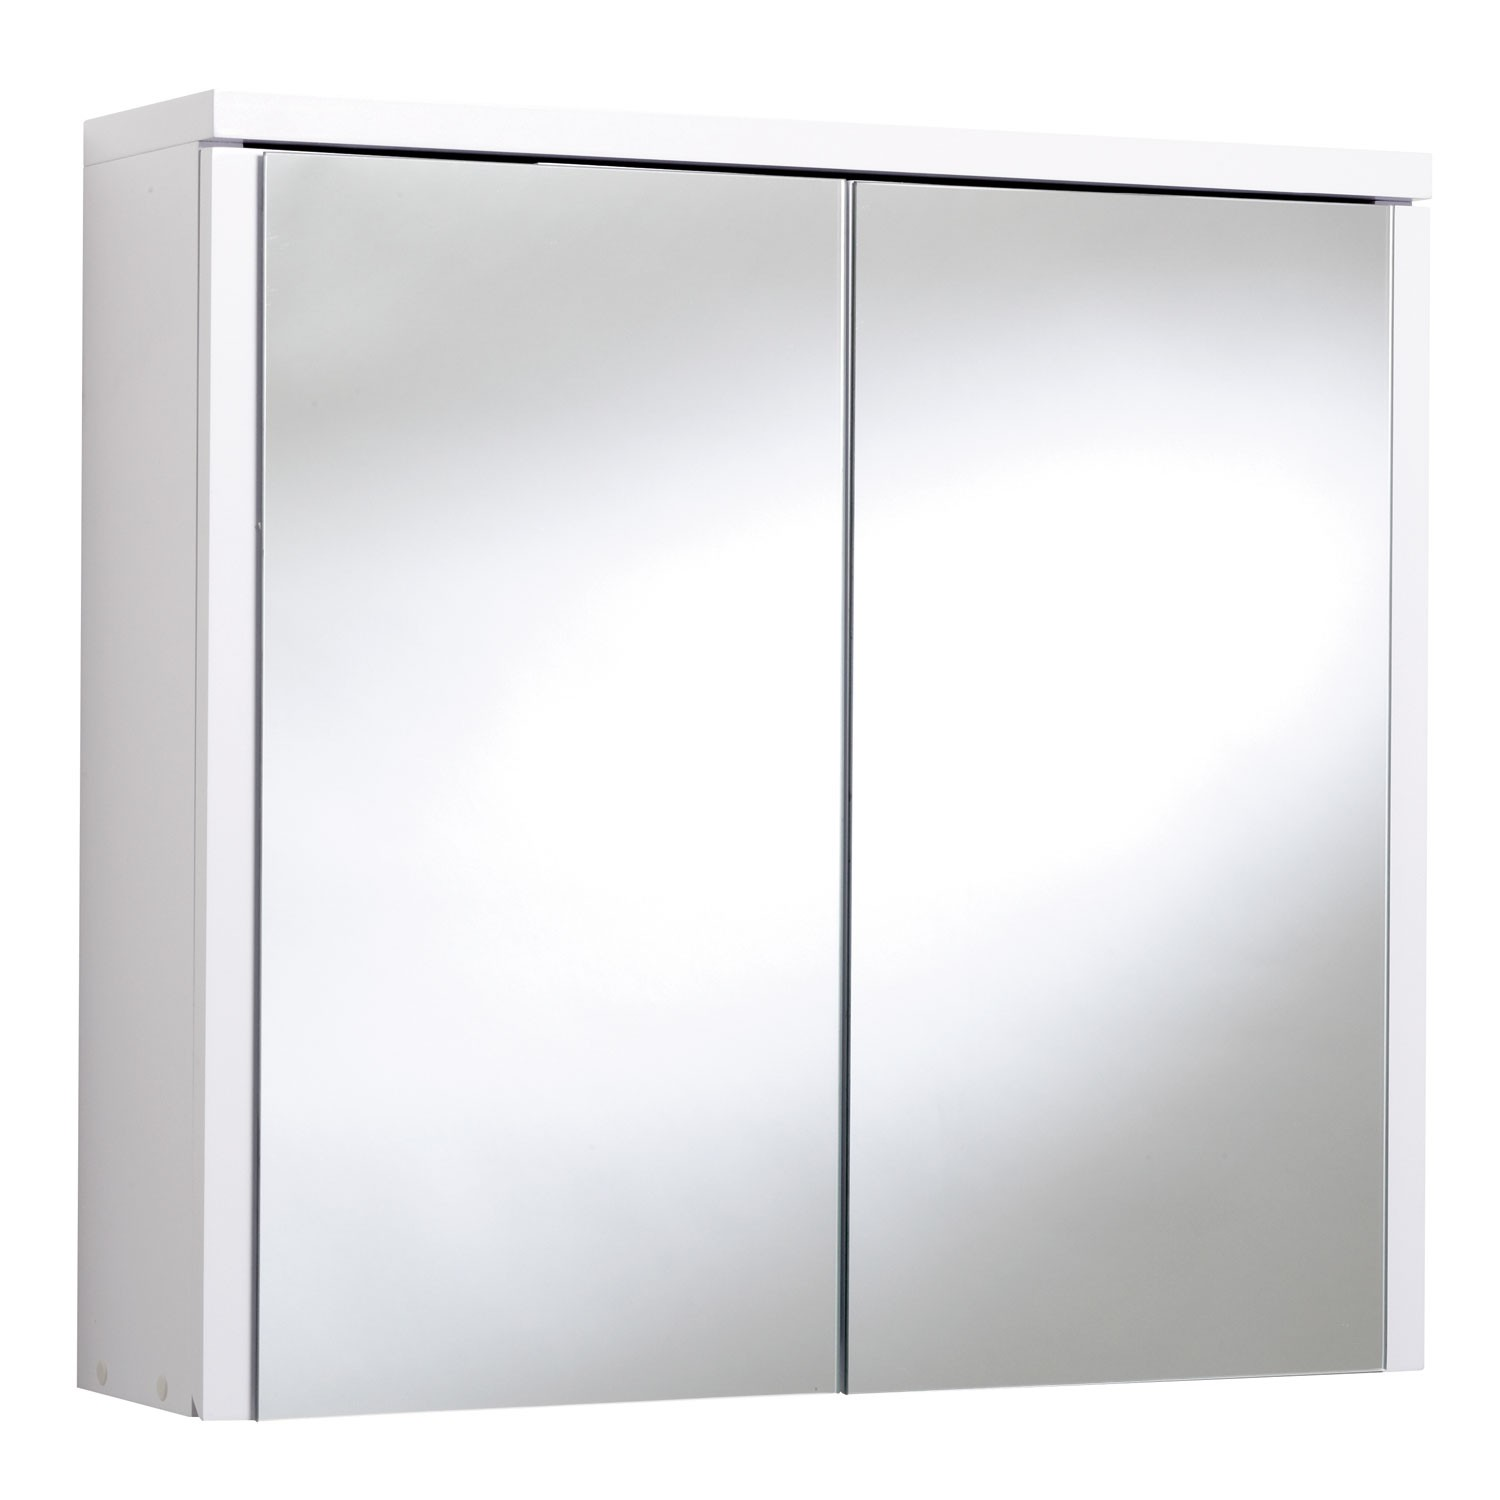 Croydex Swivel 2 Door Bathroom Cabinet With Mirror White